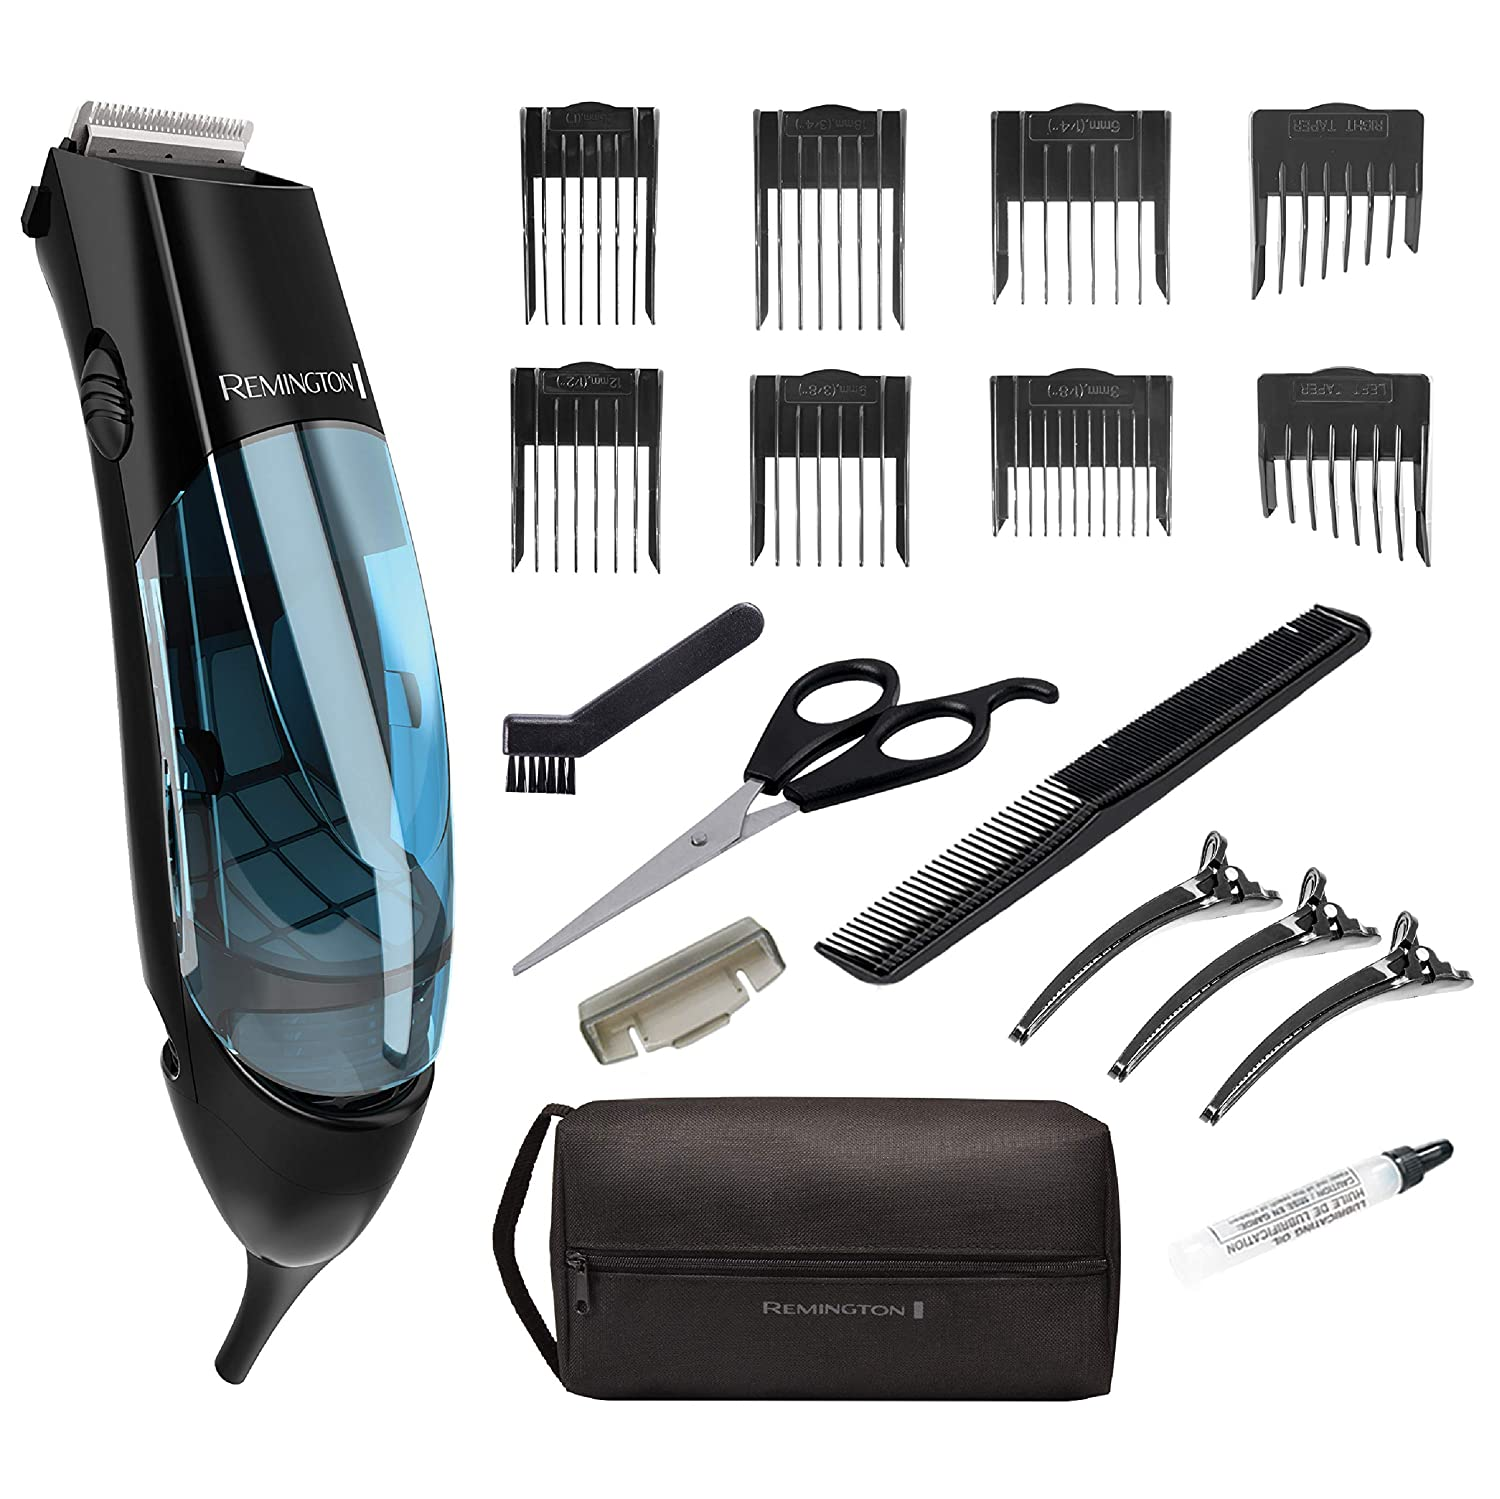 Best Hair Clippers Review - Top 10 Sharpest List for Sep. 10 with